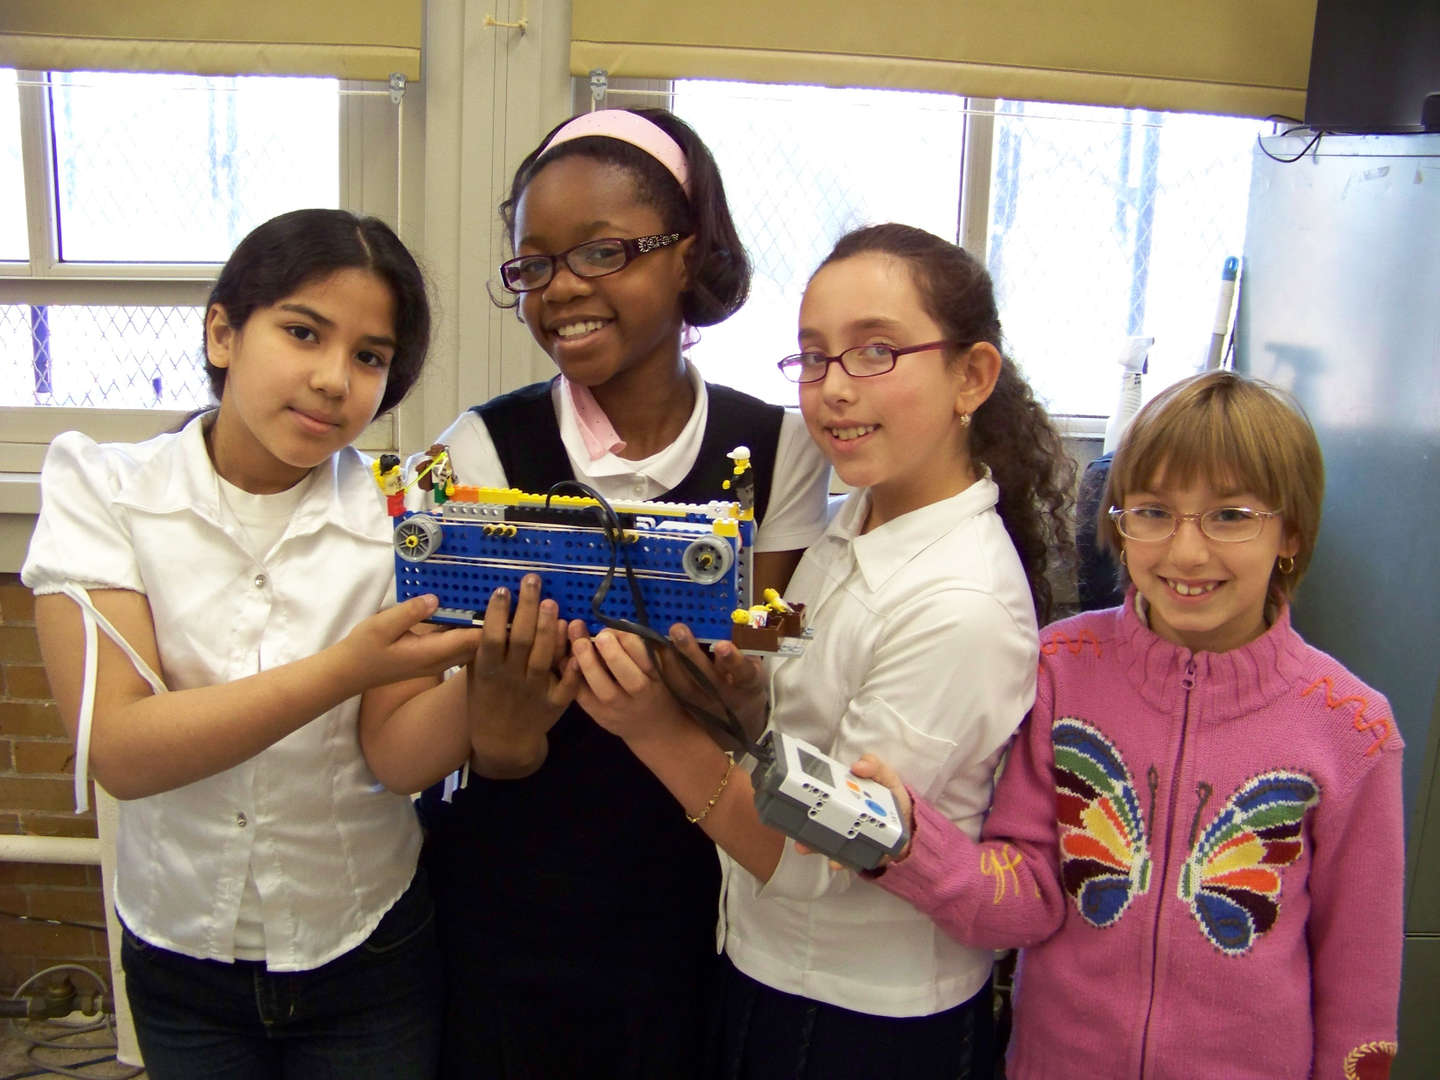 Students holding a conveyor belt for Lego Robotics